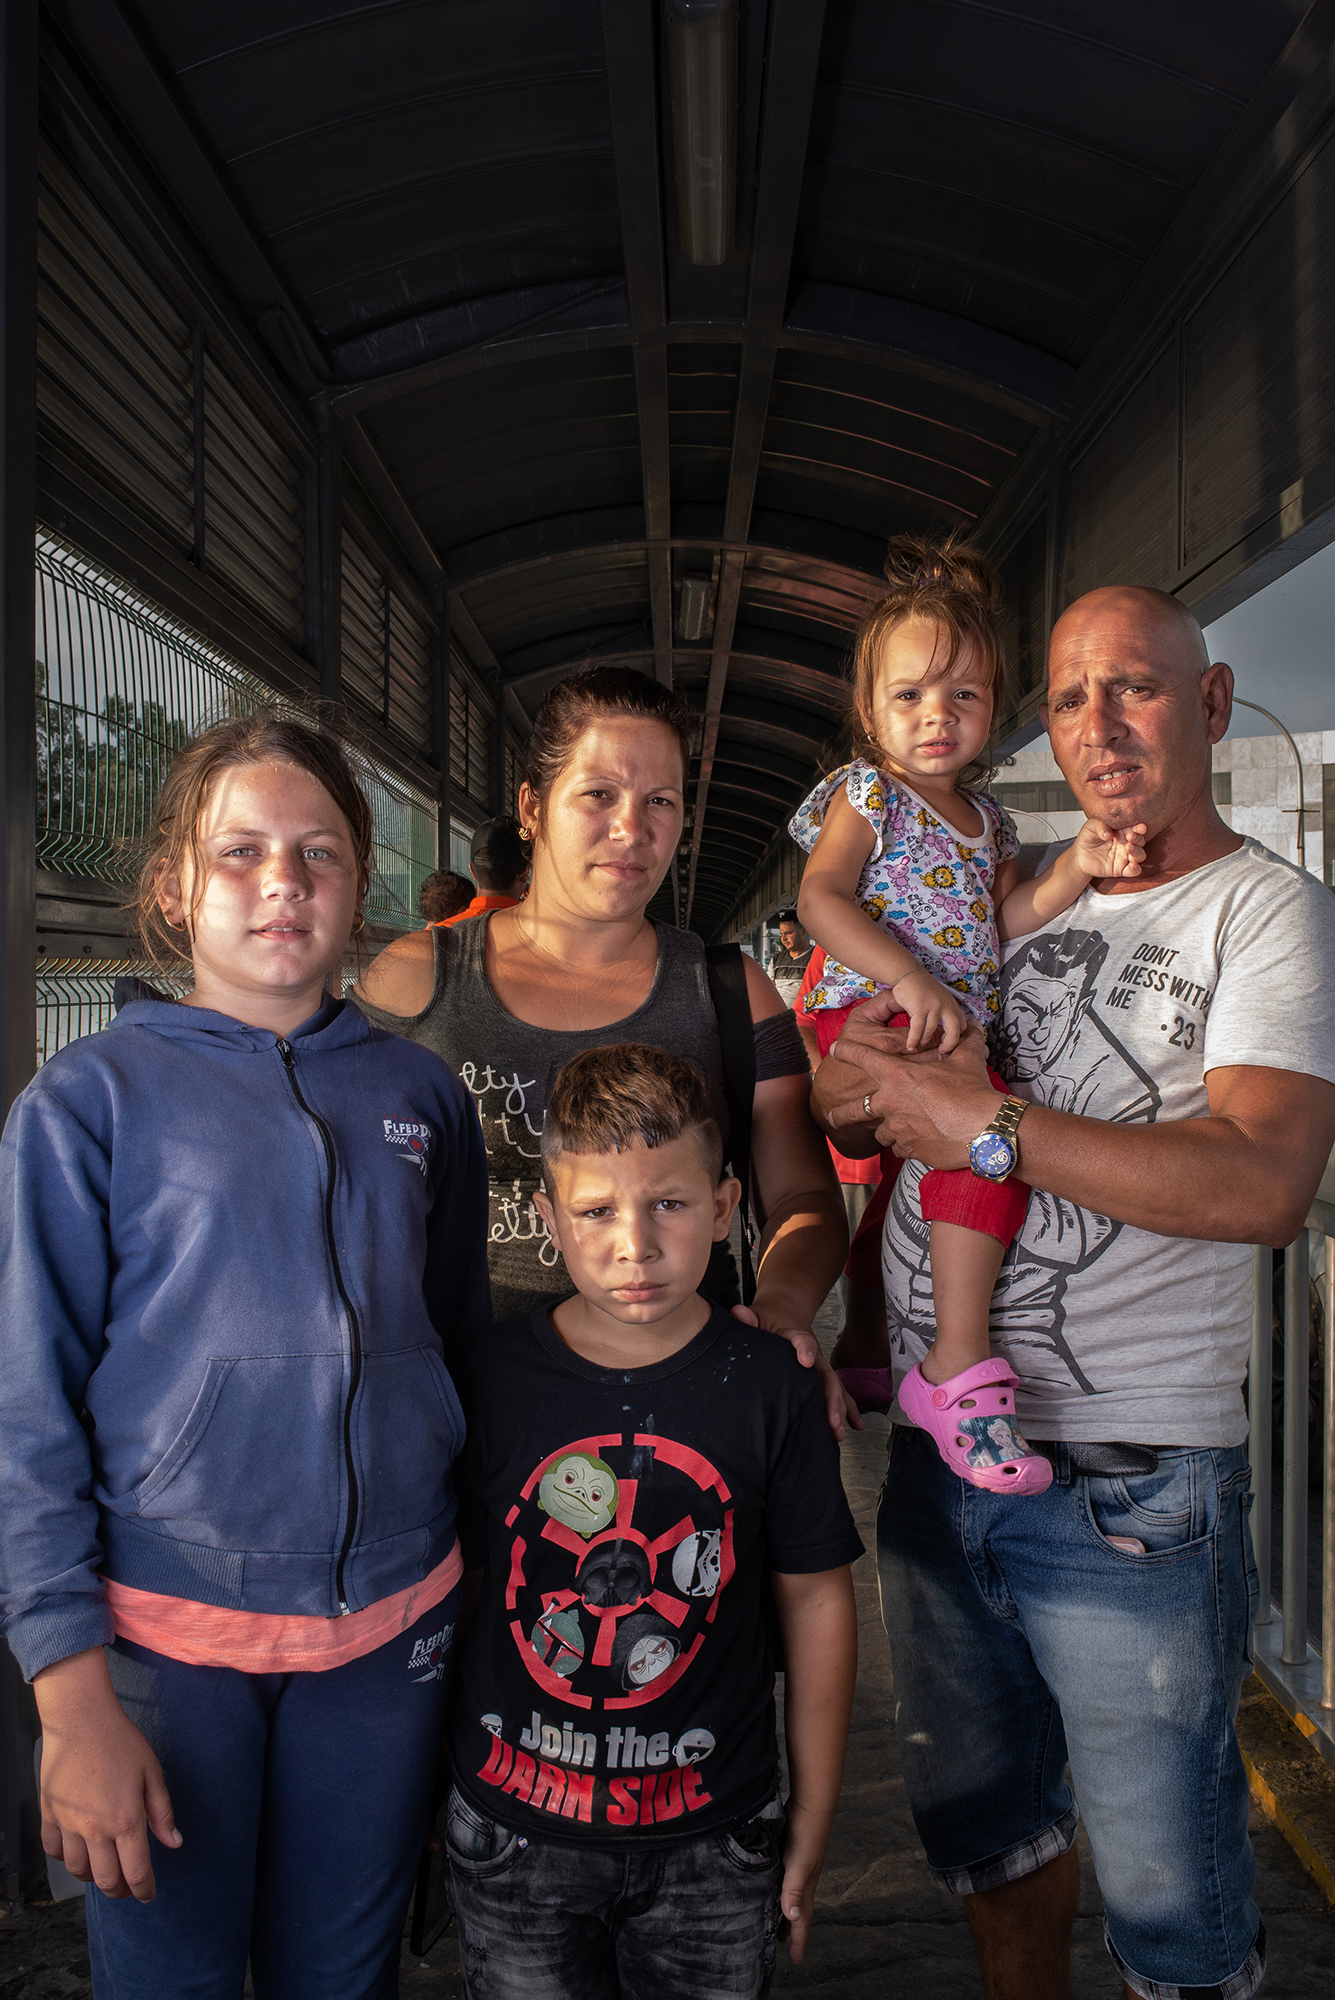 Portrait of Lorena (12), Laurel (31), Raydel (7), Yarena (2), and Raydel (45), from Cuba at Laredo / Nuevo Laredo International Bridge. They decided to leave their homecountry due to the economic and social crisis. They approached the border to ask for asylum and start a new and better life. Laredo / Nuevo Laredo International Bridge. June 25th, 2018. Photographer: Luján Agusti.